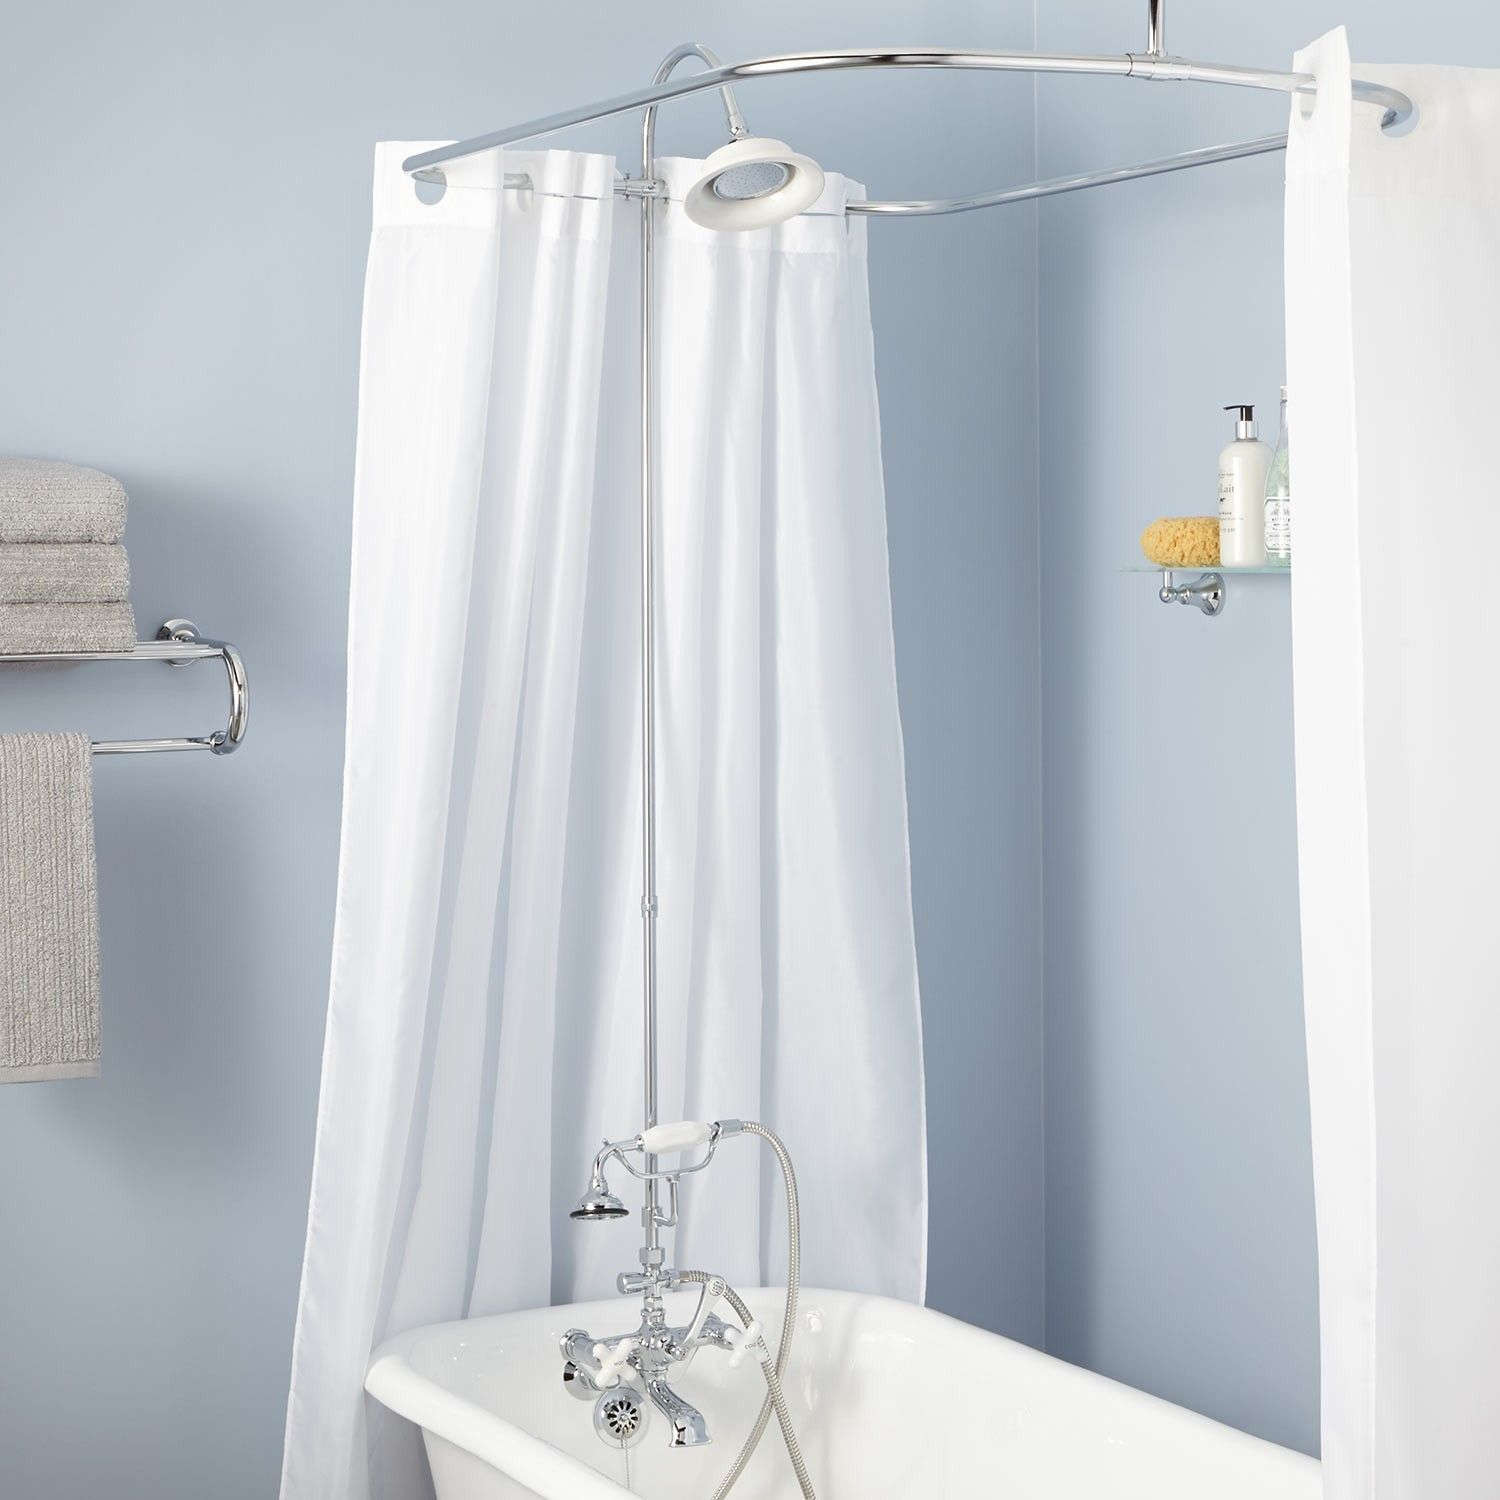 English Shower Conversion Kit with Hand Shower - Porcelain Shower ...